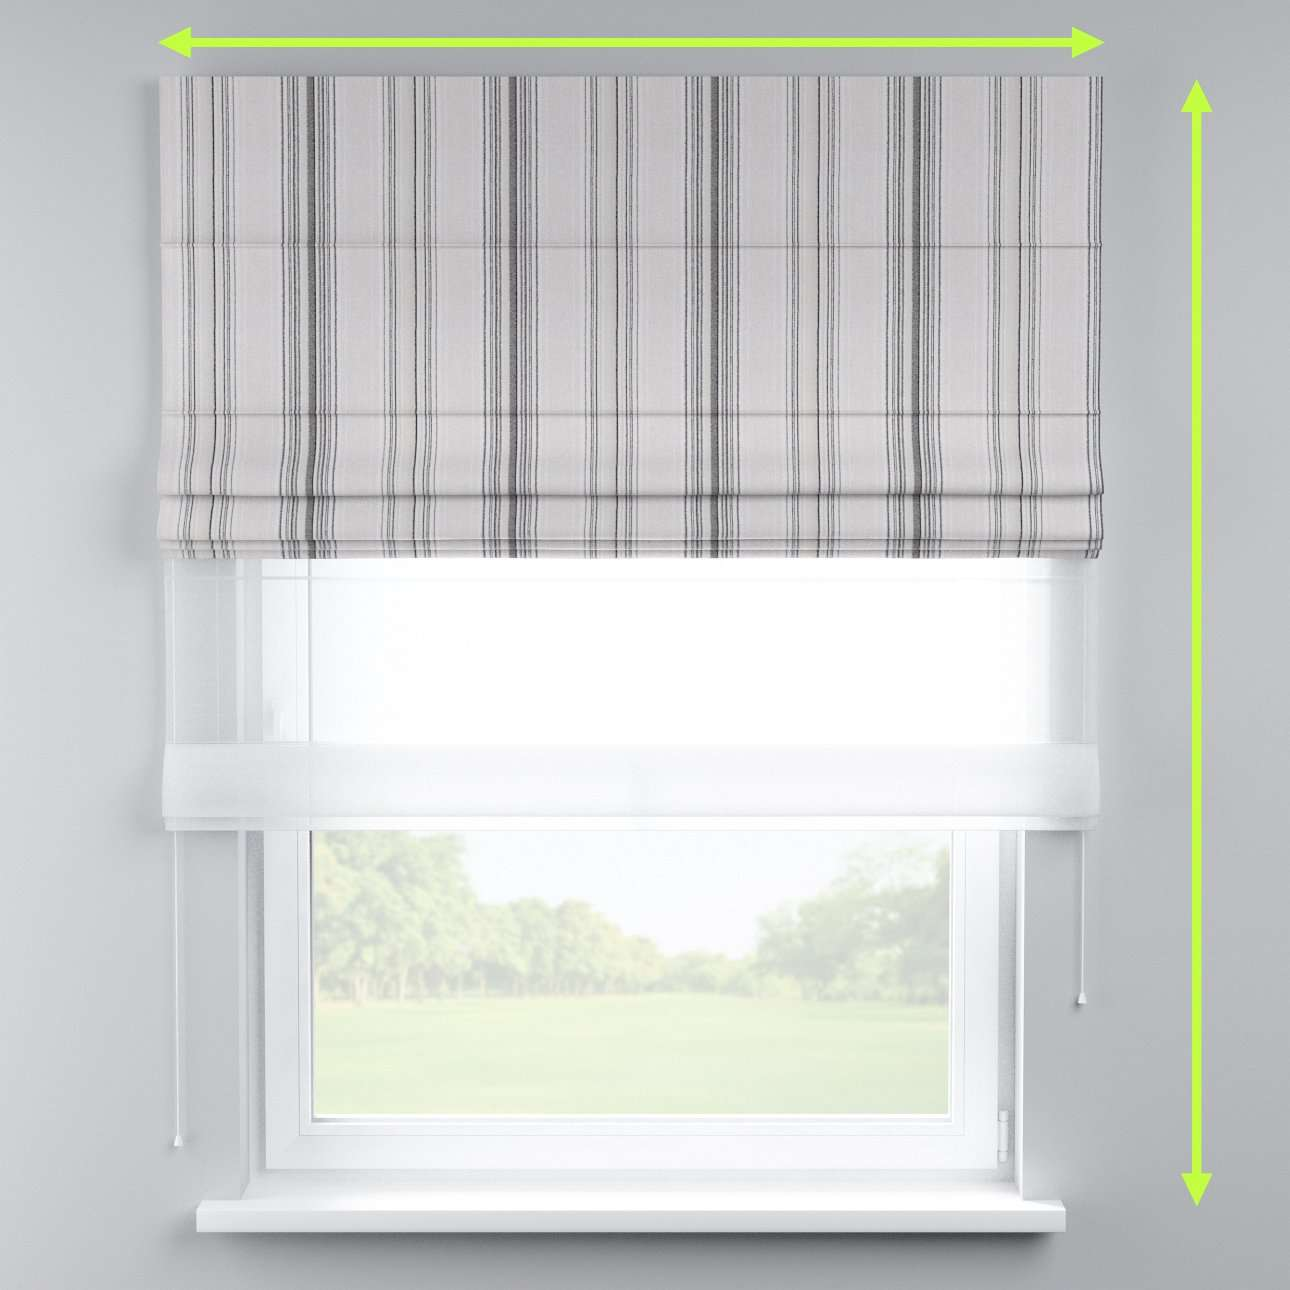 Voile and fabric roman blind (DUO II) in collection Rustica, fabric: 138-15